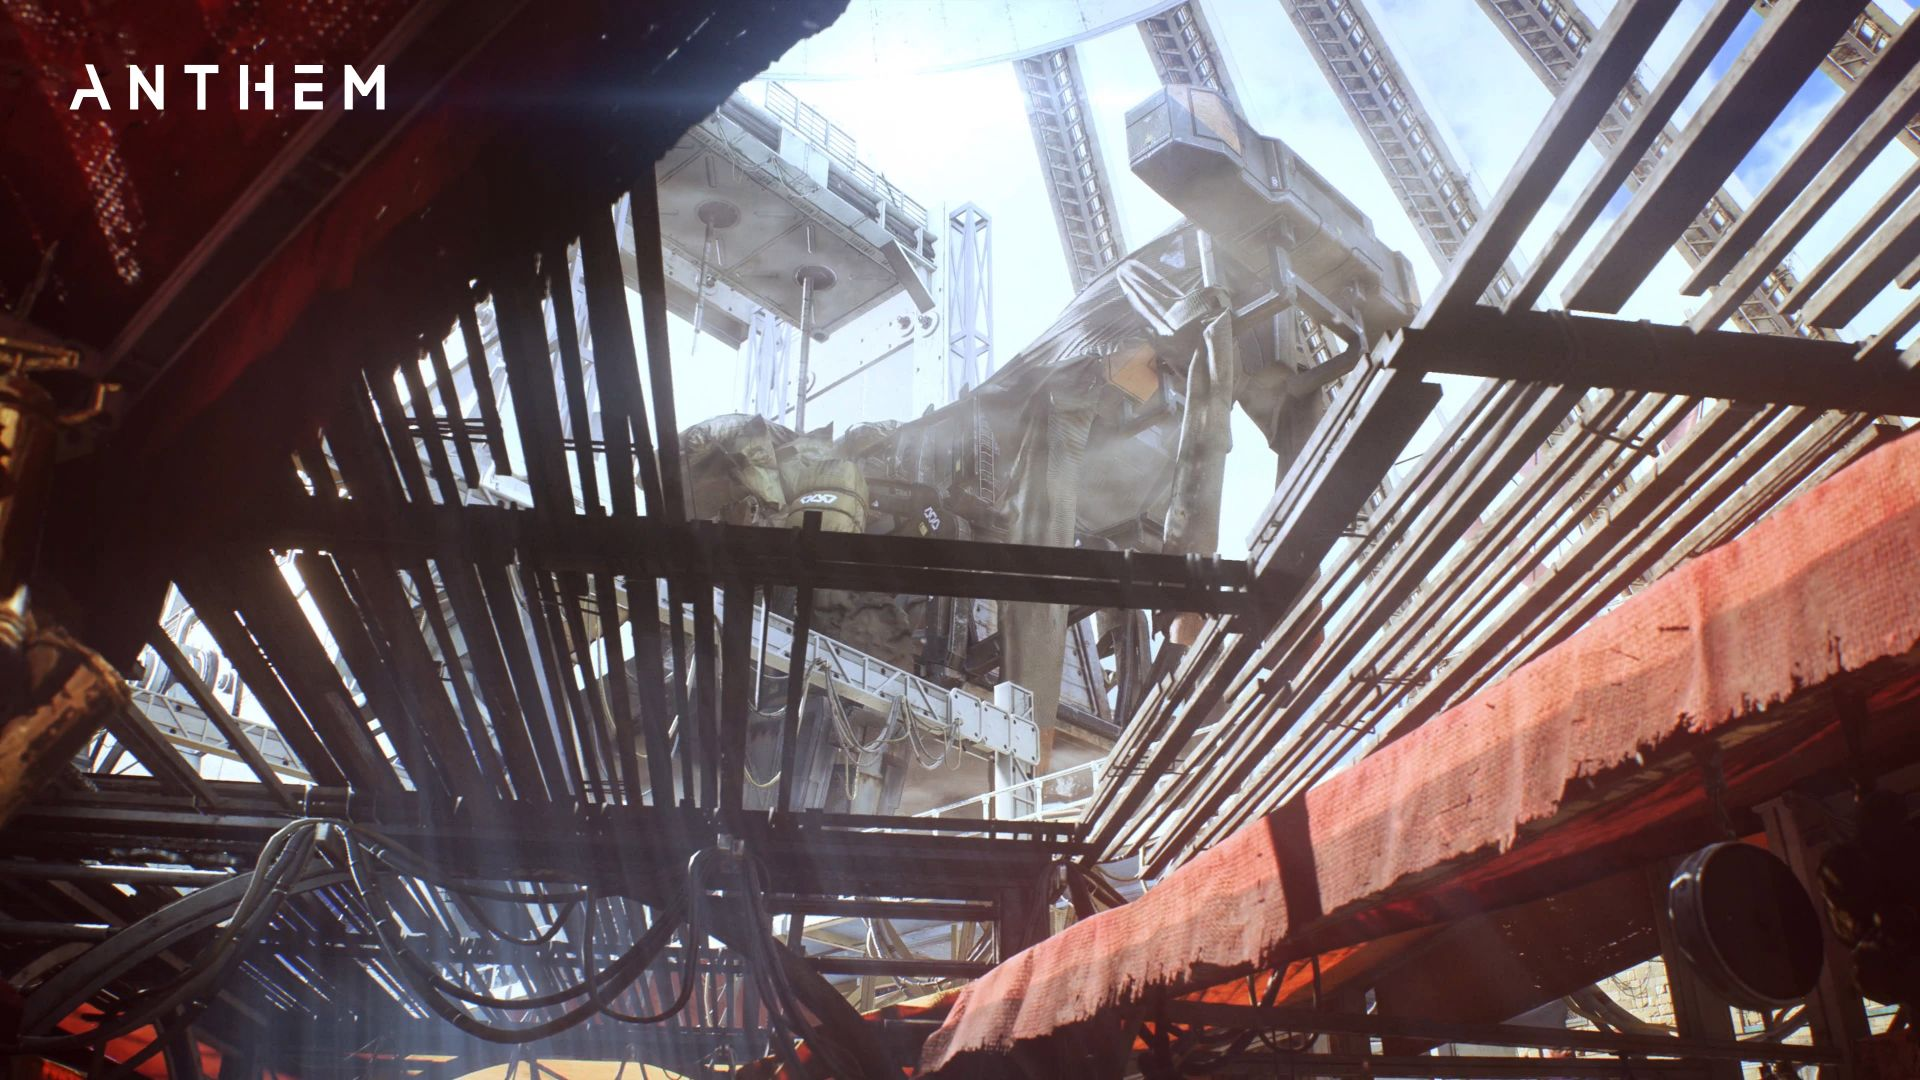 Anthem, 4k, screenshot, gameplay (horizontal)